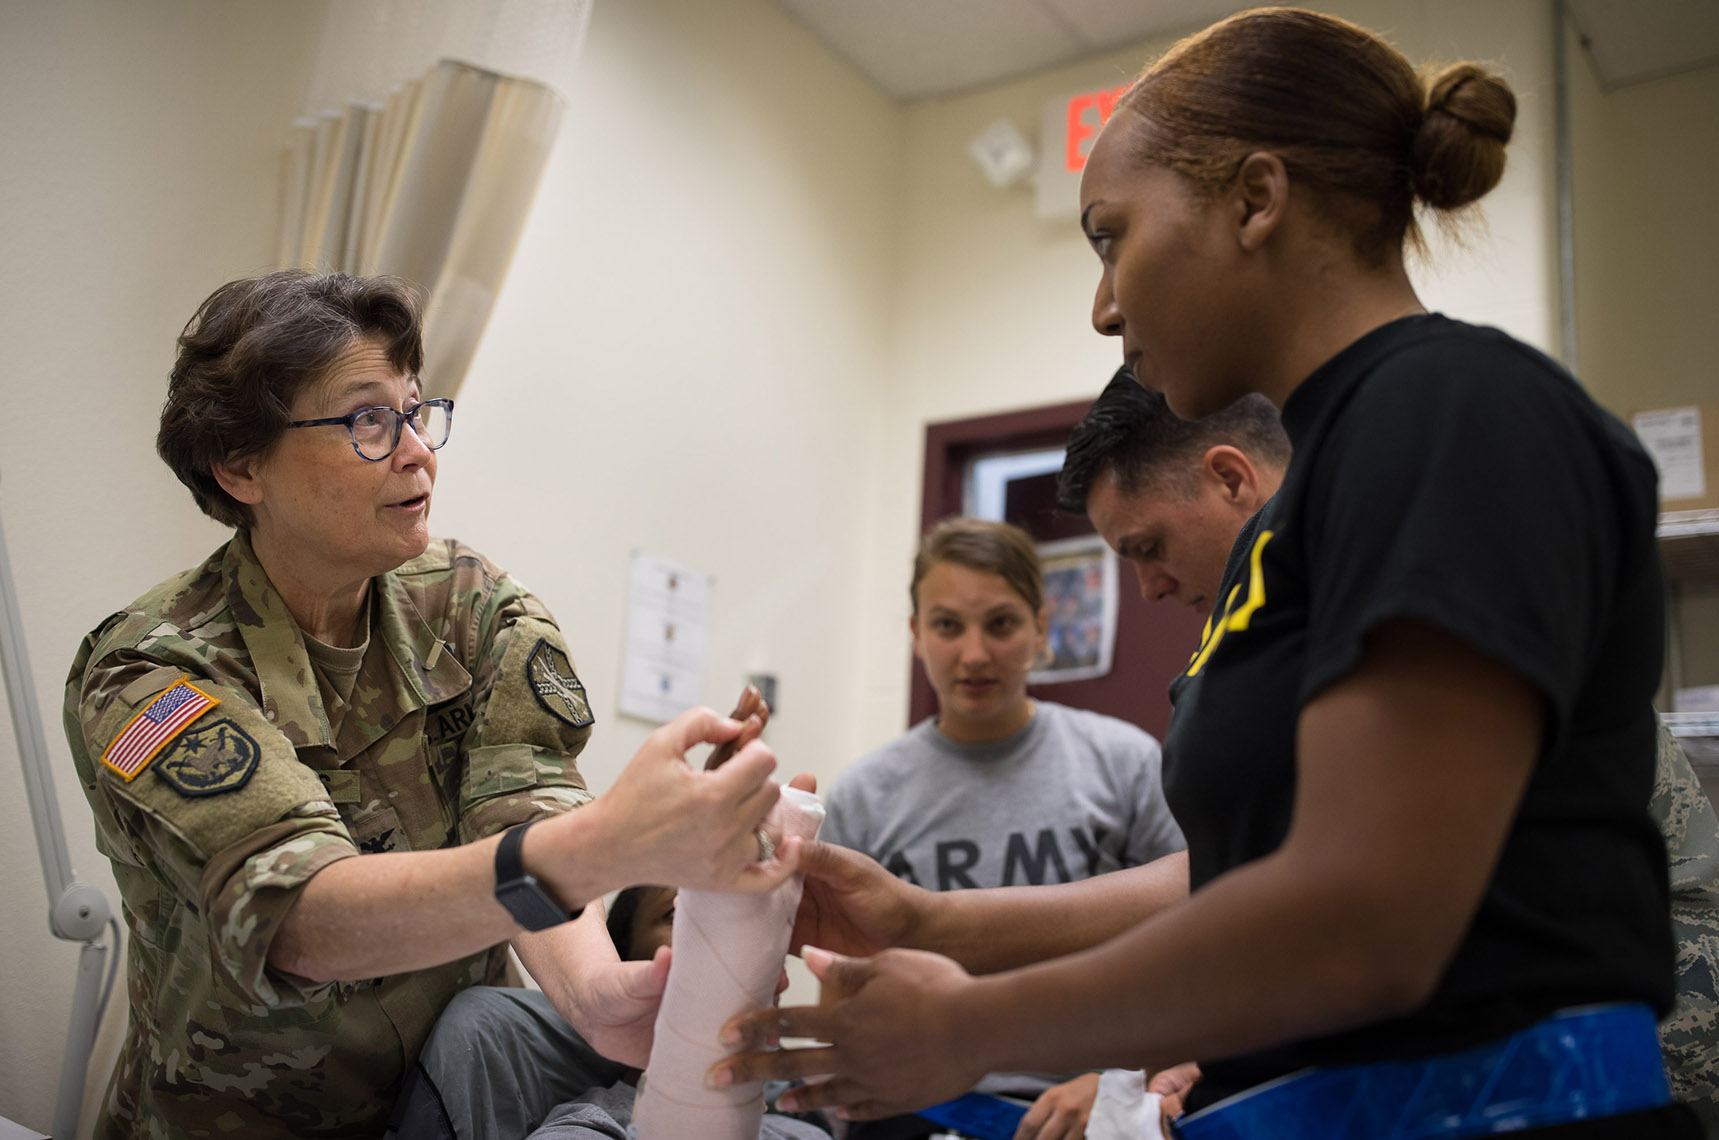 Military Service Physician Assistant Col Pauline Gross